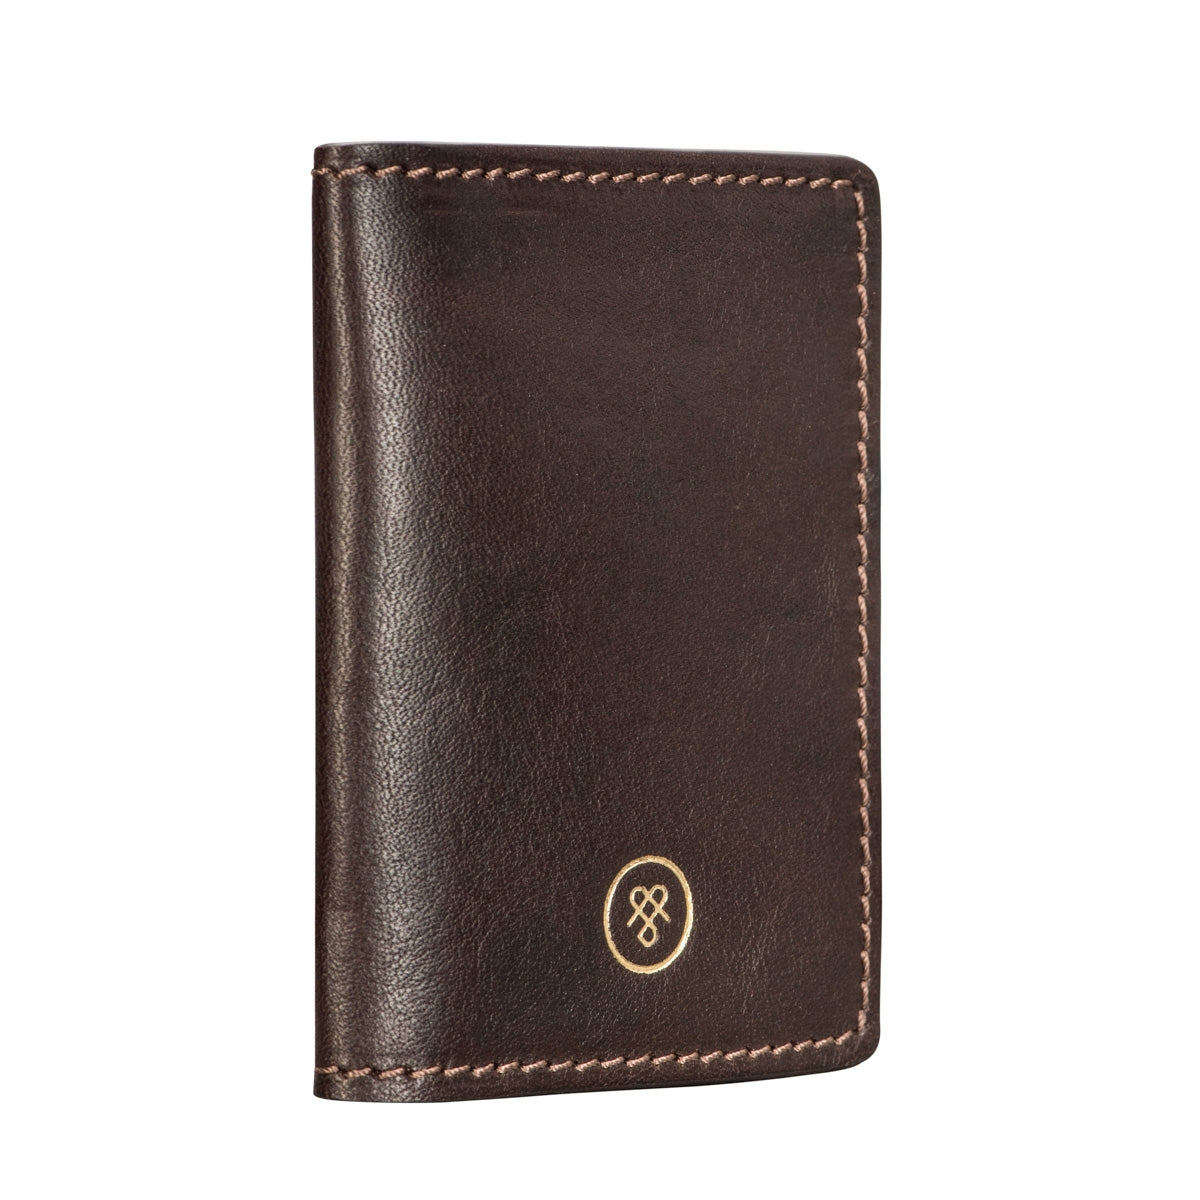 Image 4 of the 'Vallata' Brown Veg-Tanned Leather Oyster Card Holder